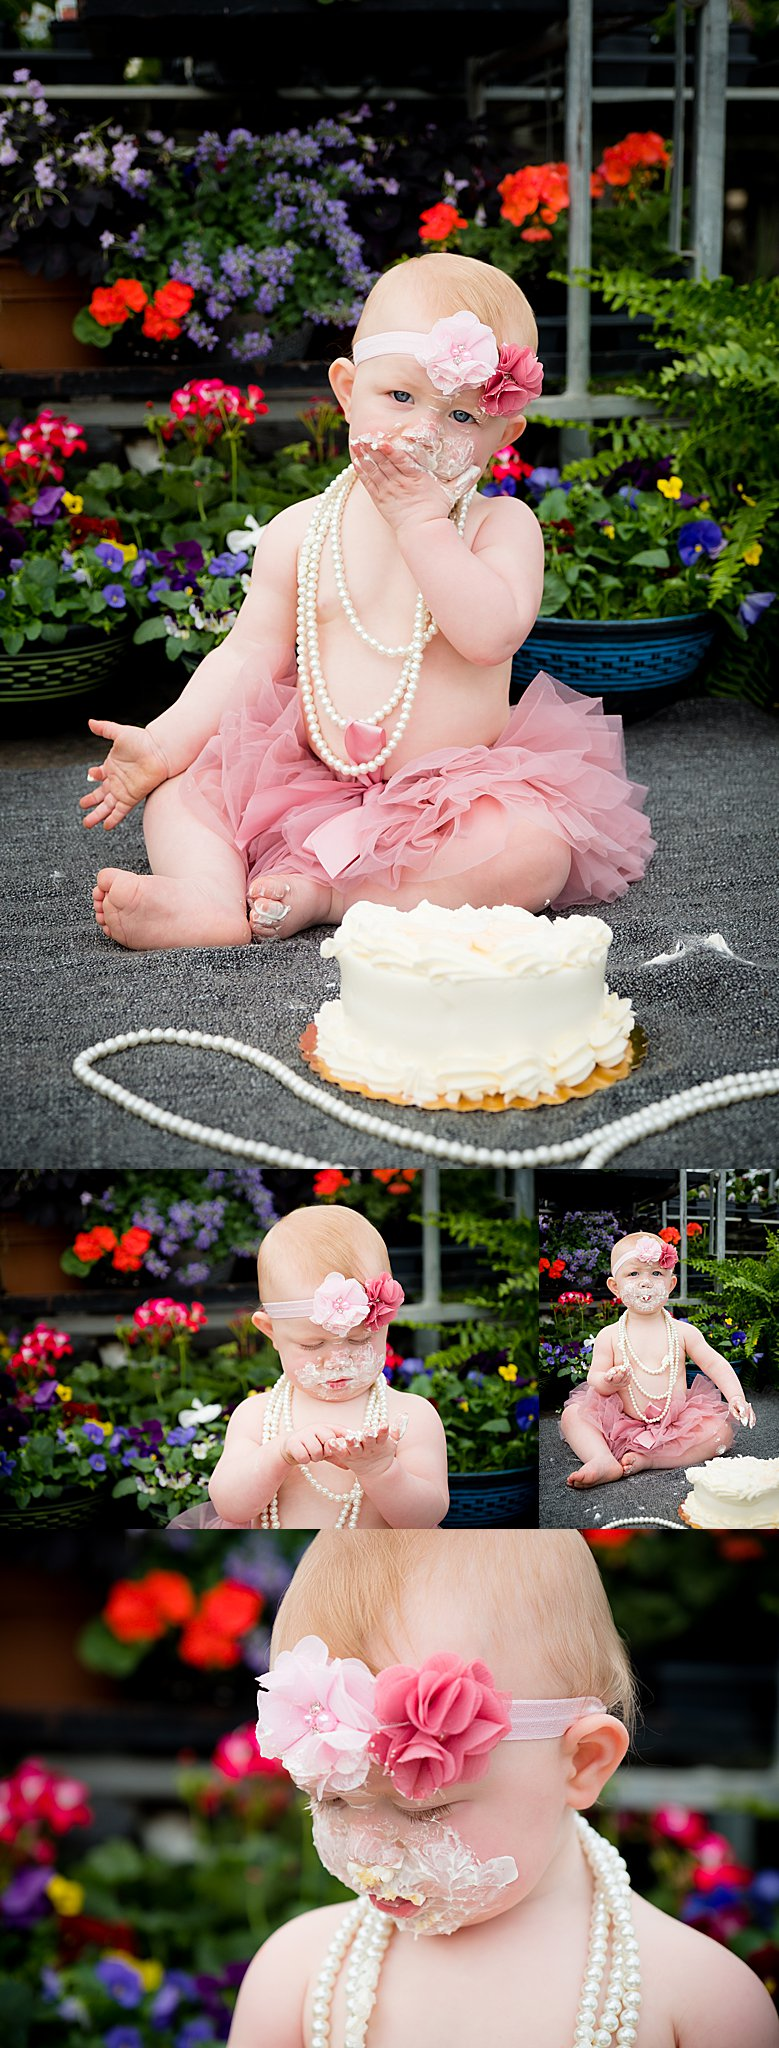 Ivy Lynn 1 Year Old-88_WEB.jpg